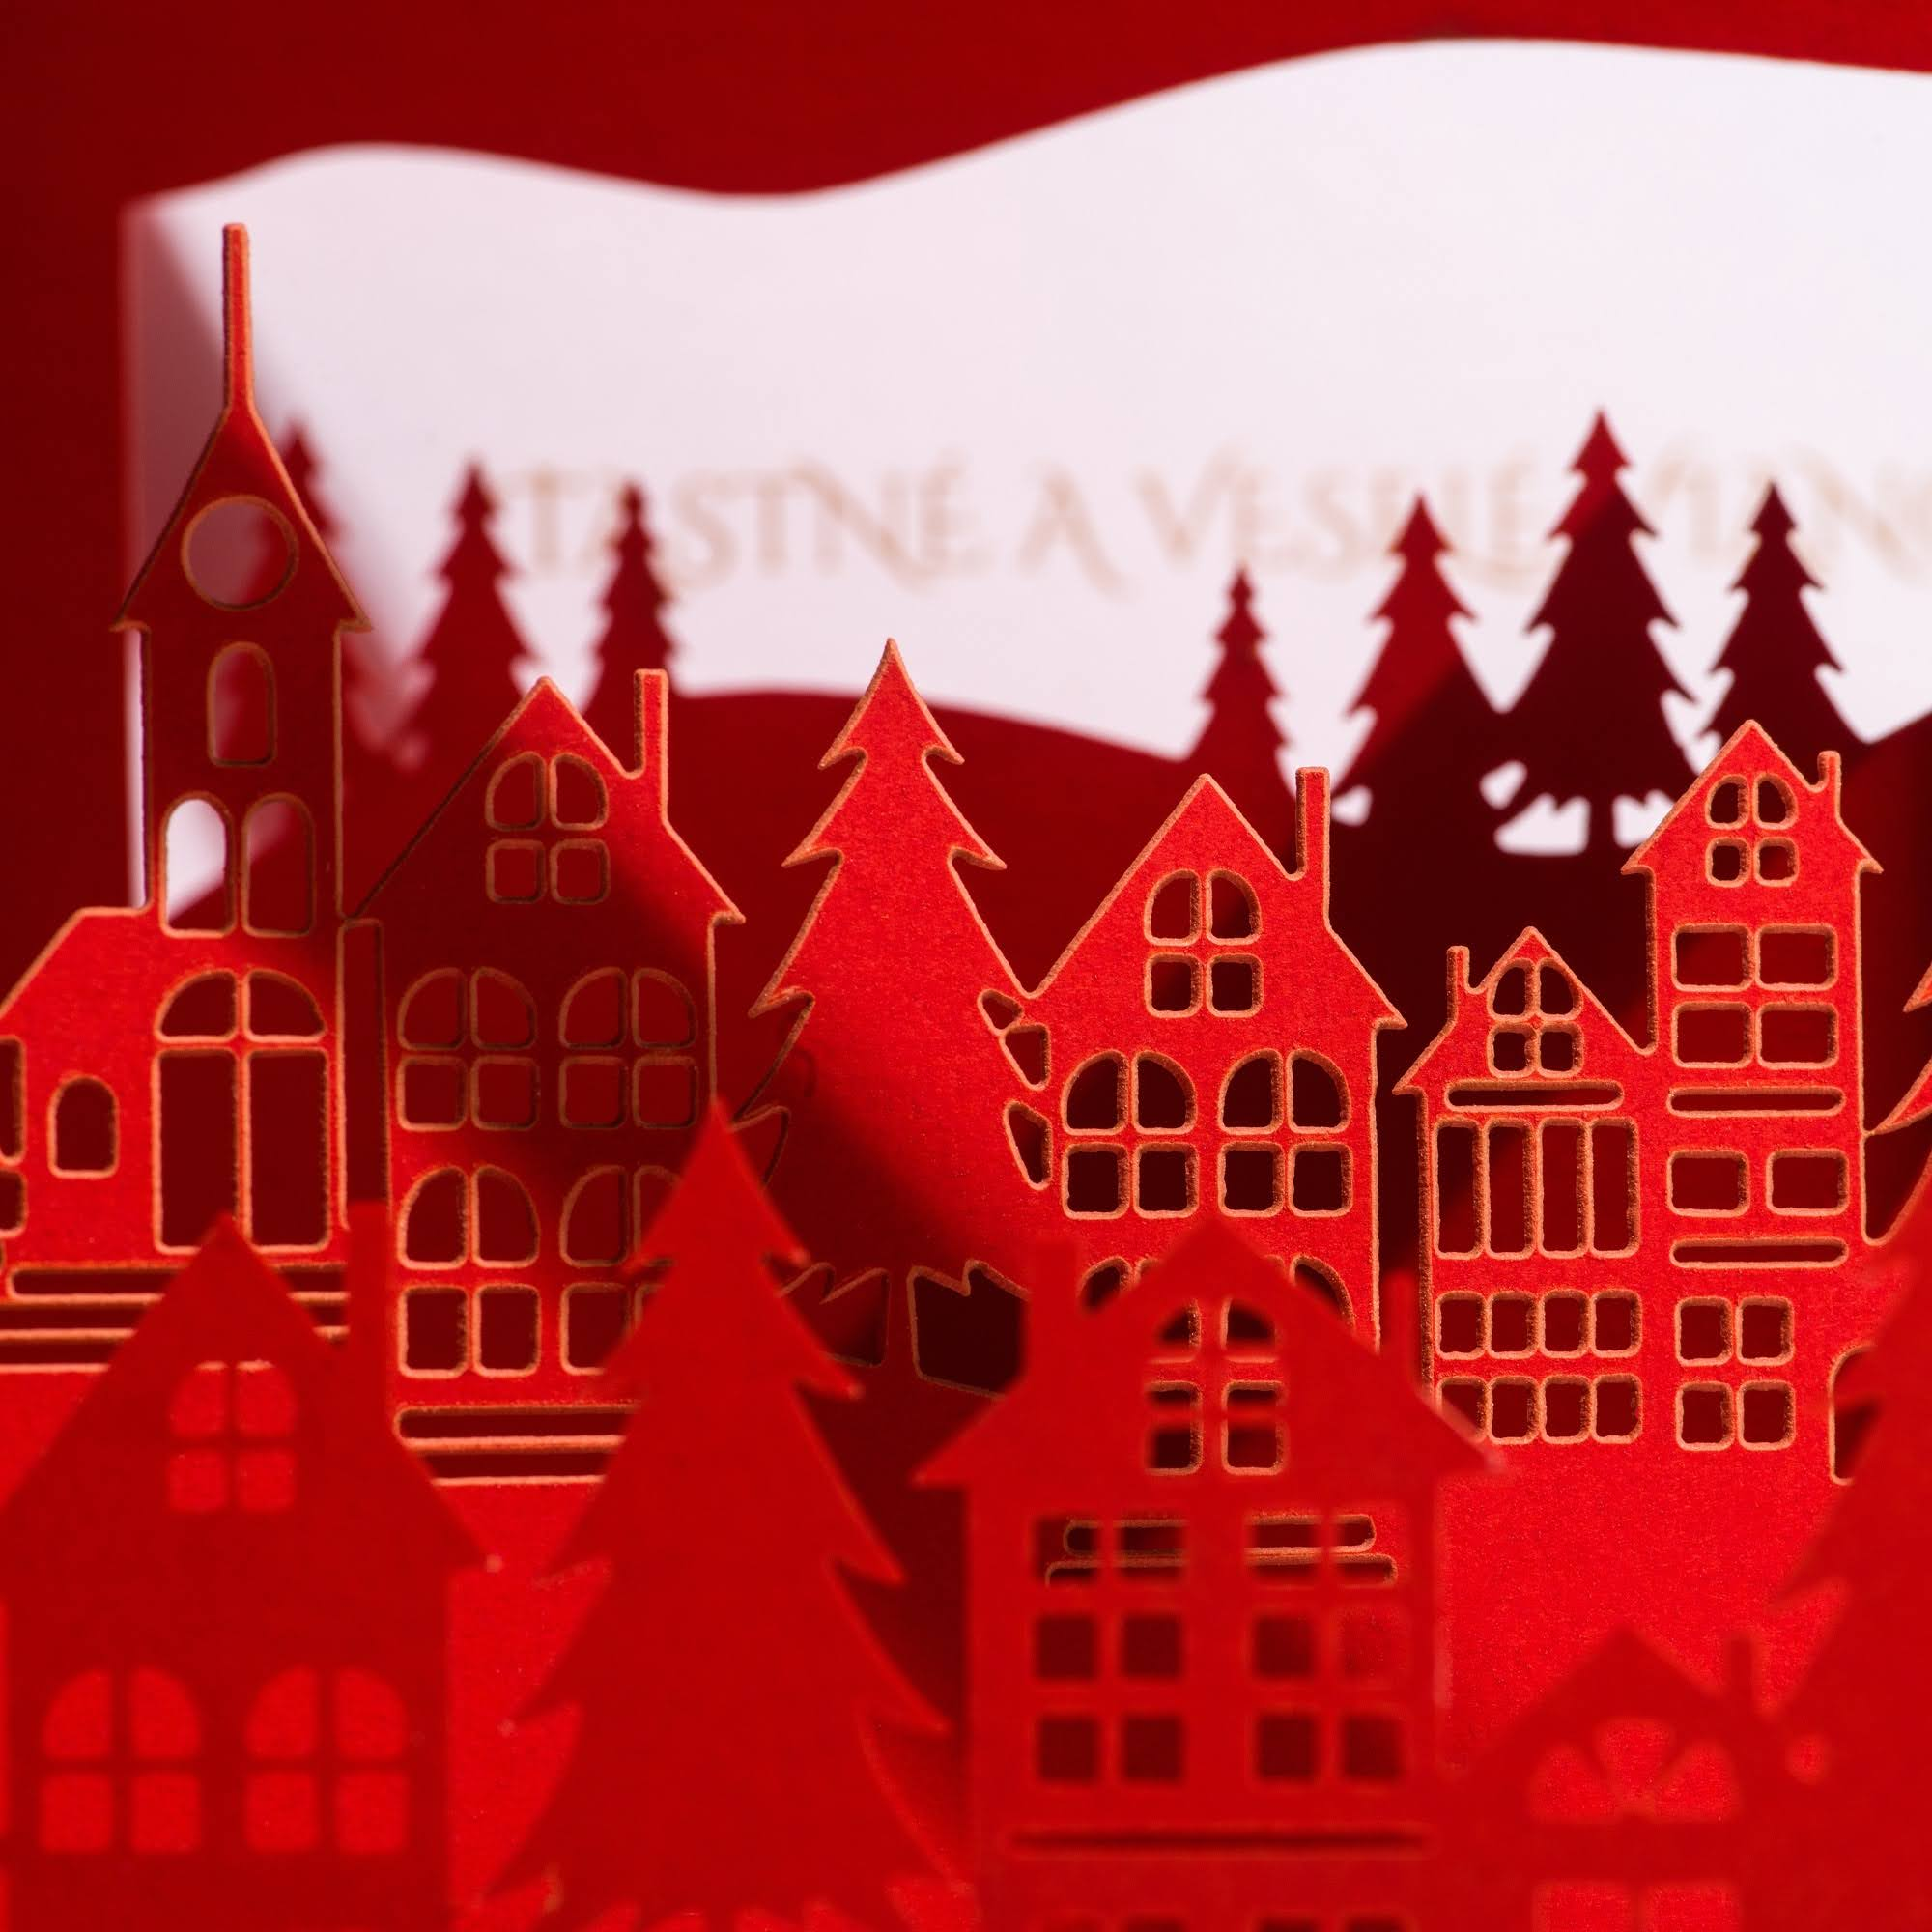 Laser-cut Christmas Village 3D greeting card